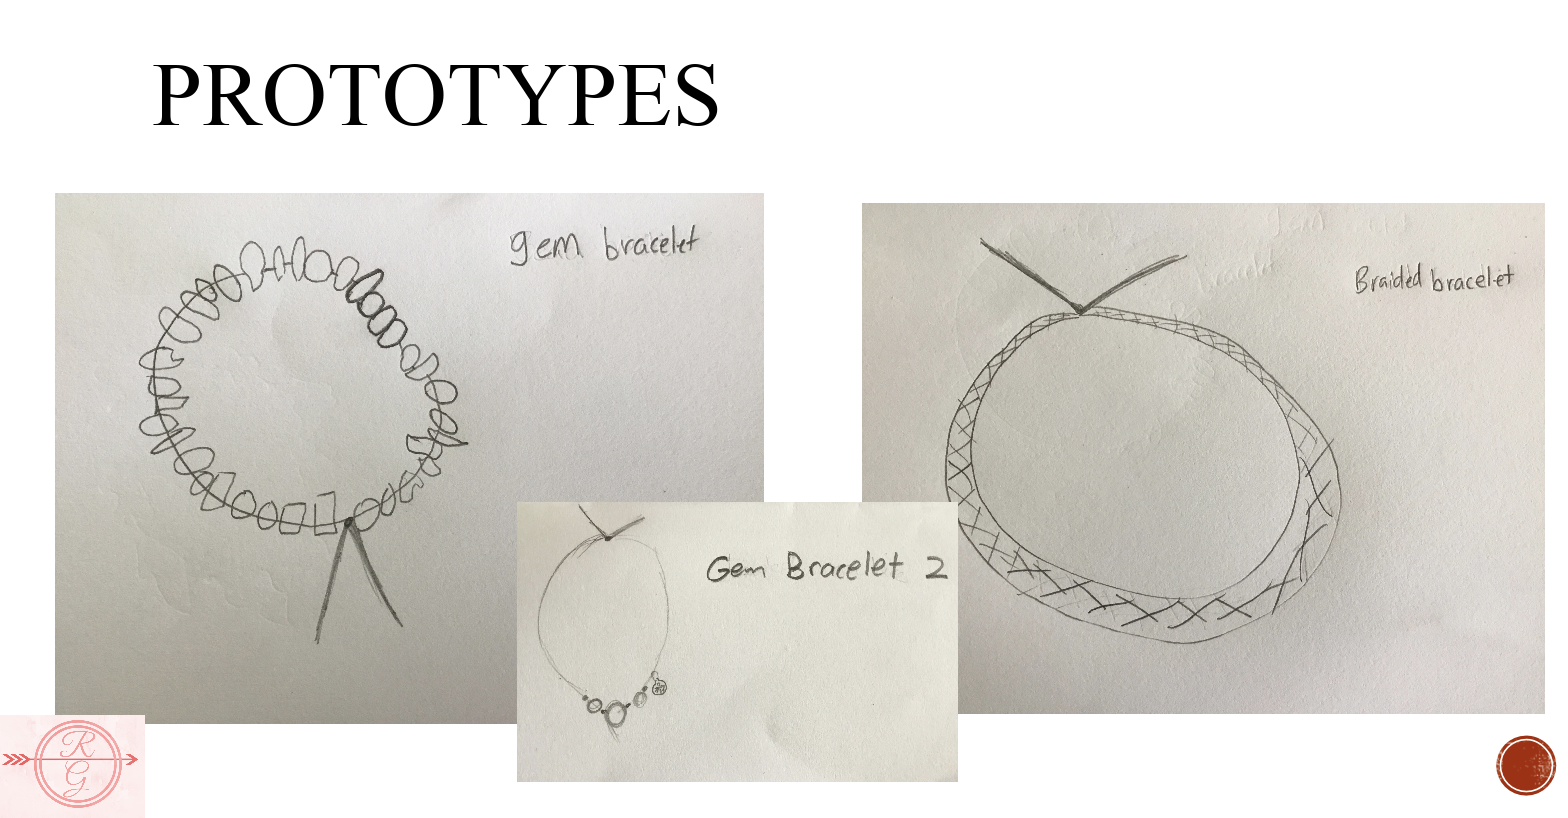 Three rough sketches of the three prototype bracelets are shown.